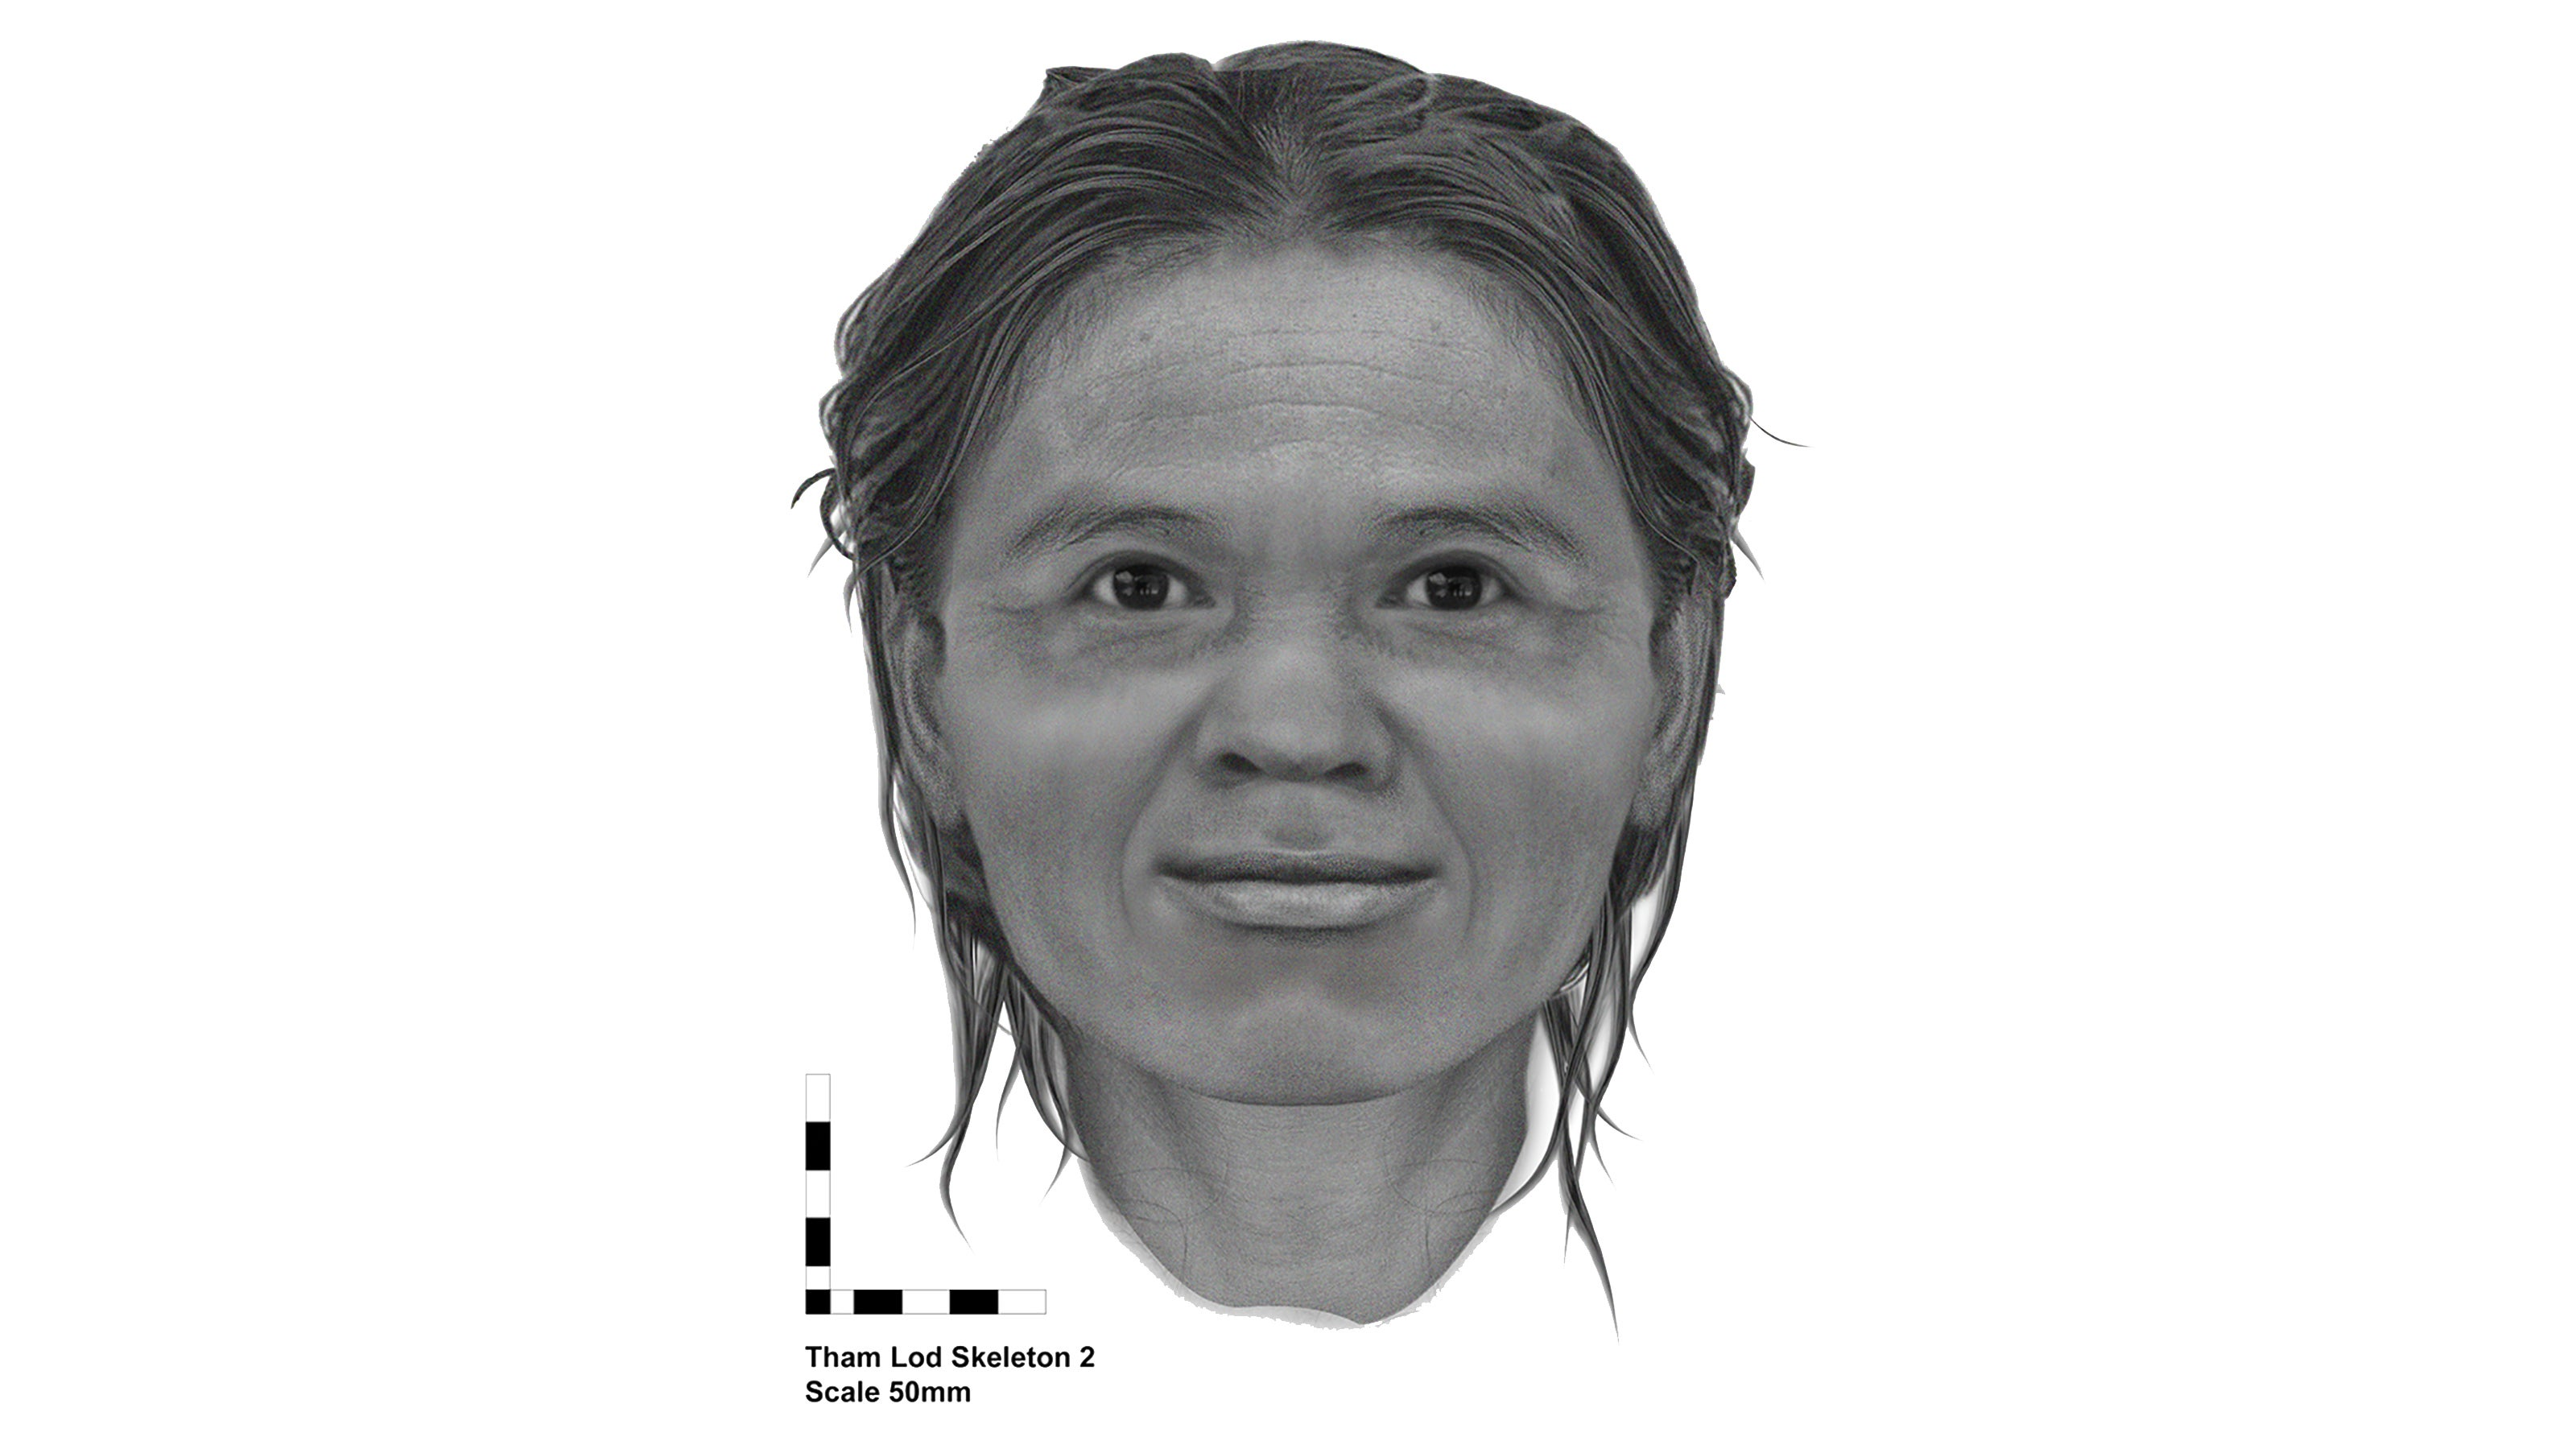 How Do You Keep A 13,600-Year-Old Woman From Looking Like Wilma Flintstone?